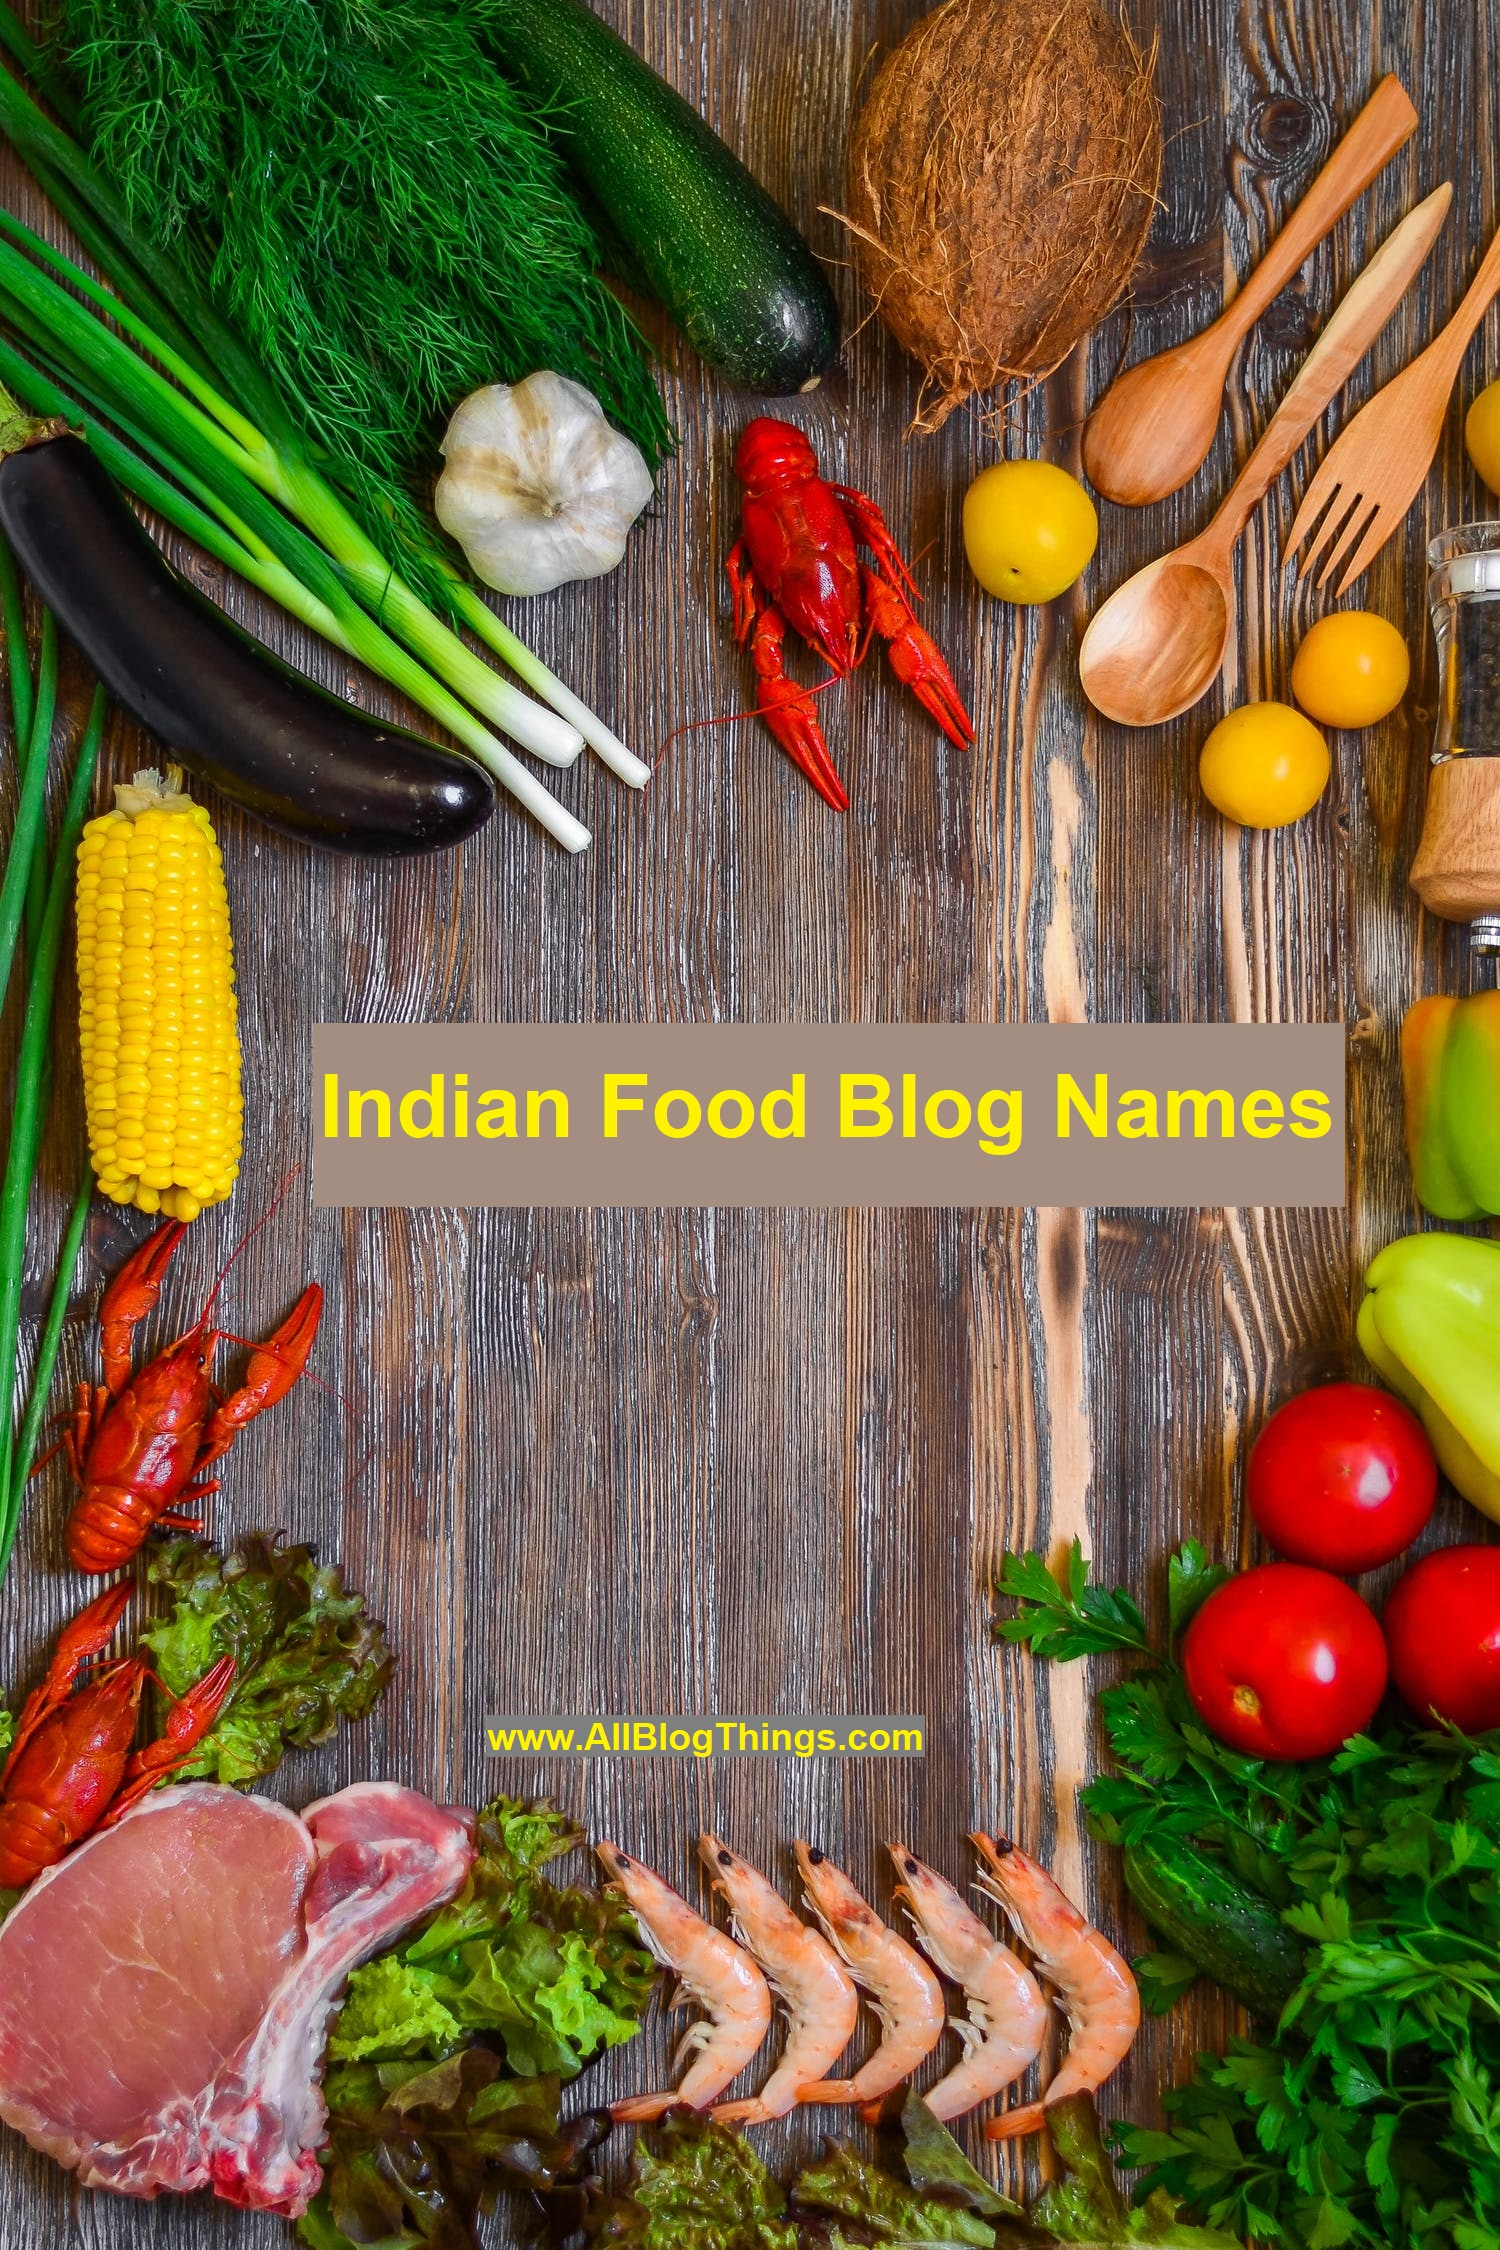 Indian Food Blog Names - 300+ Creative Name Ideas